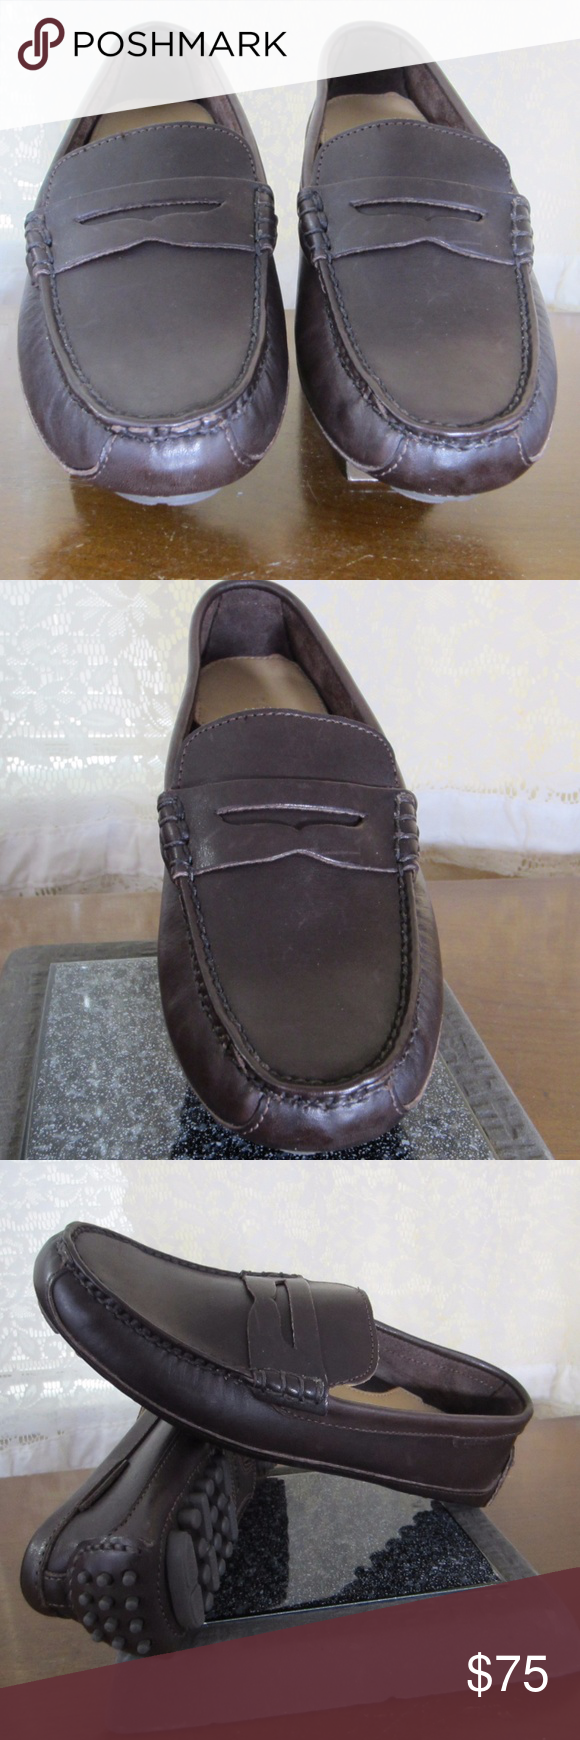 3eebd90cbe5 COLE HAAN COBURN PENNY LOAFER Bring a casual update to your loafer  collection with the Coburn